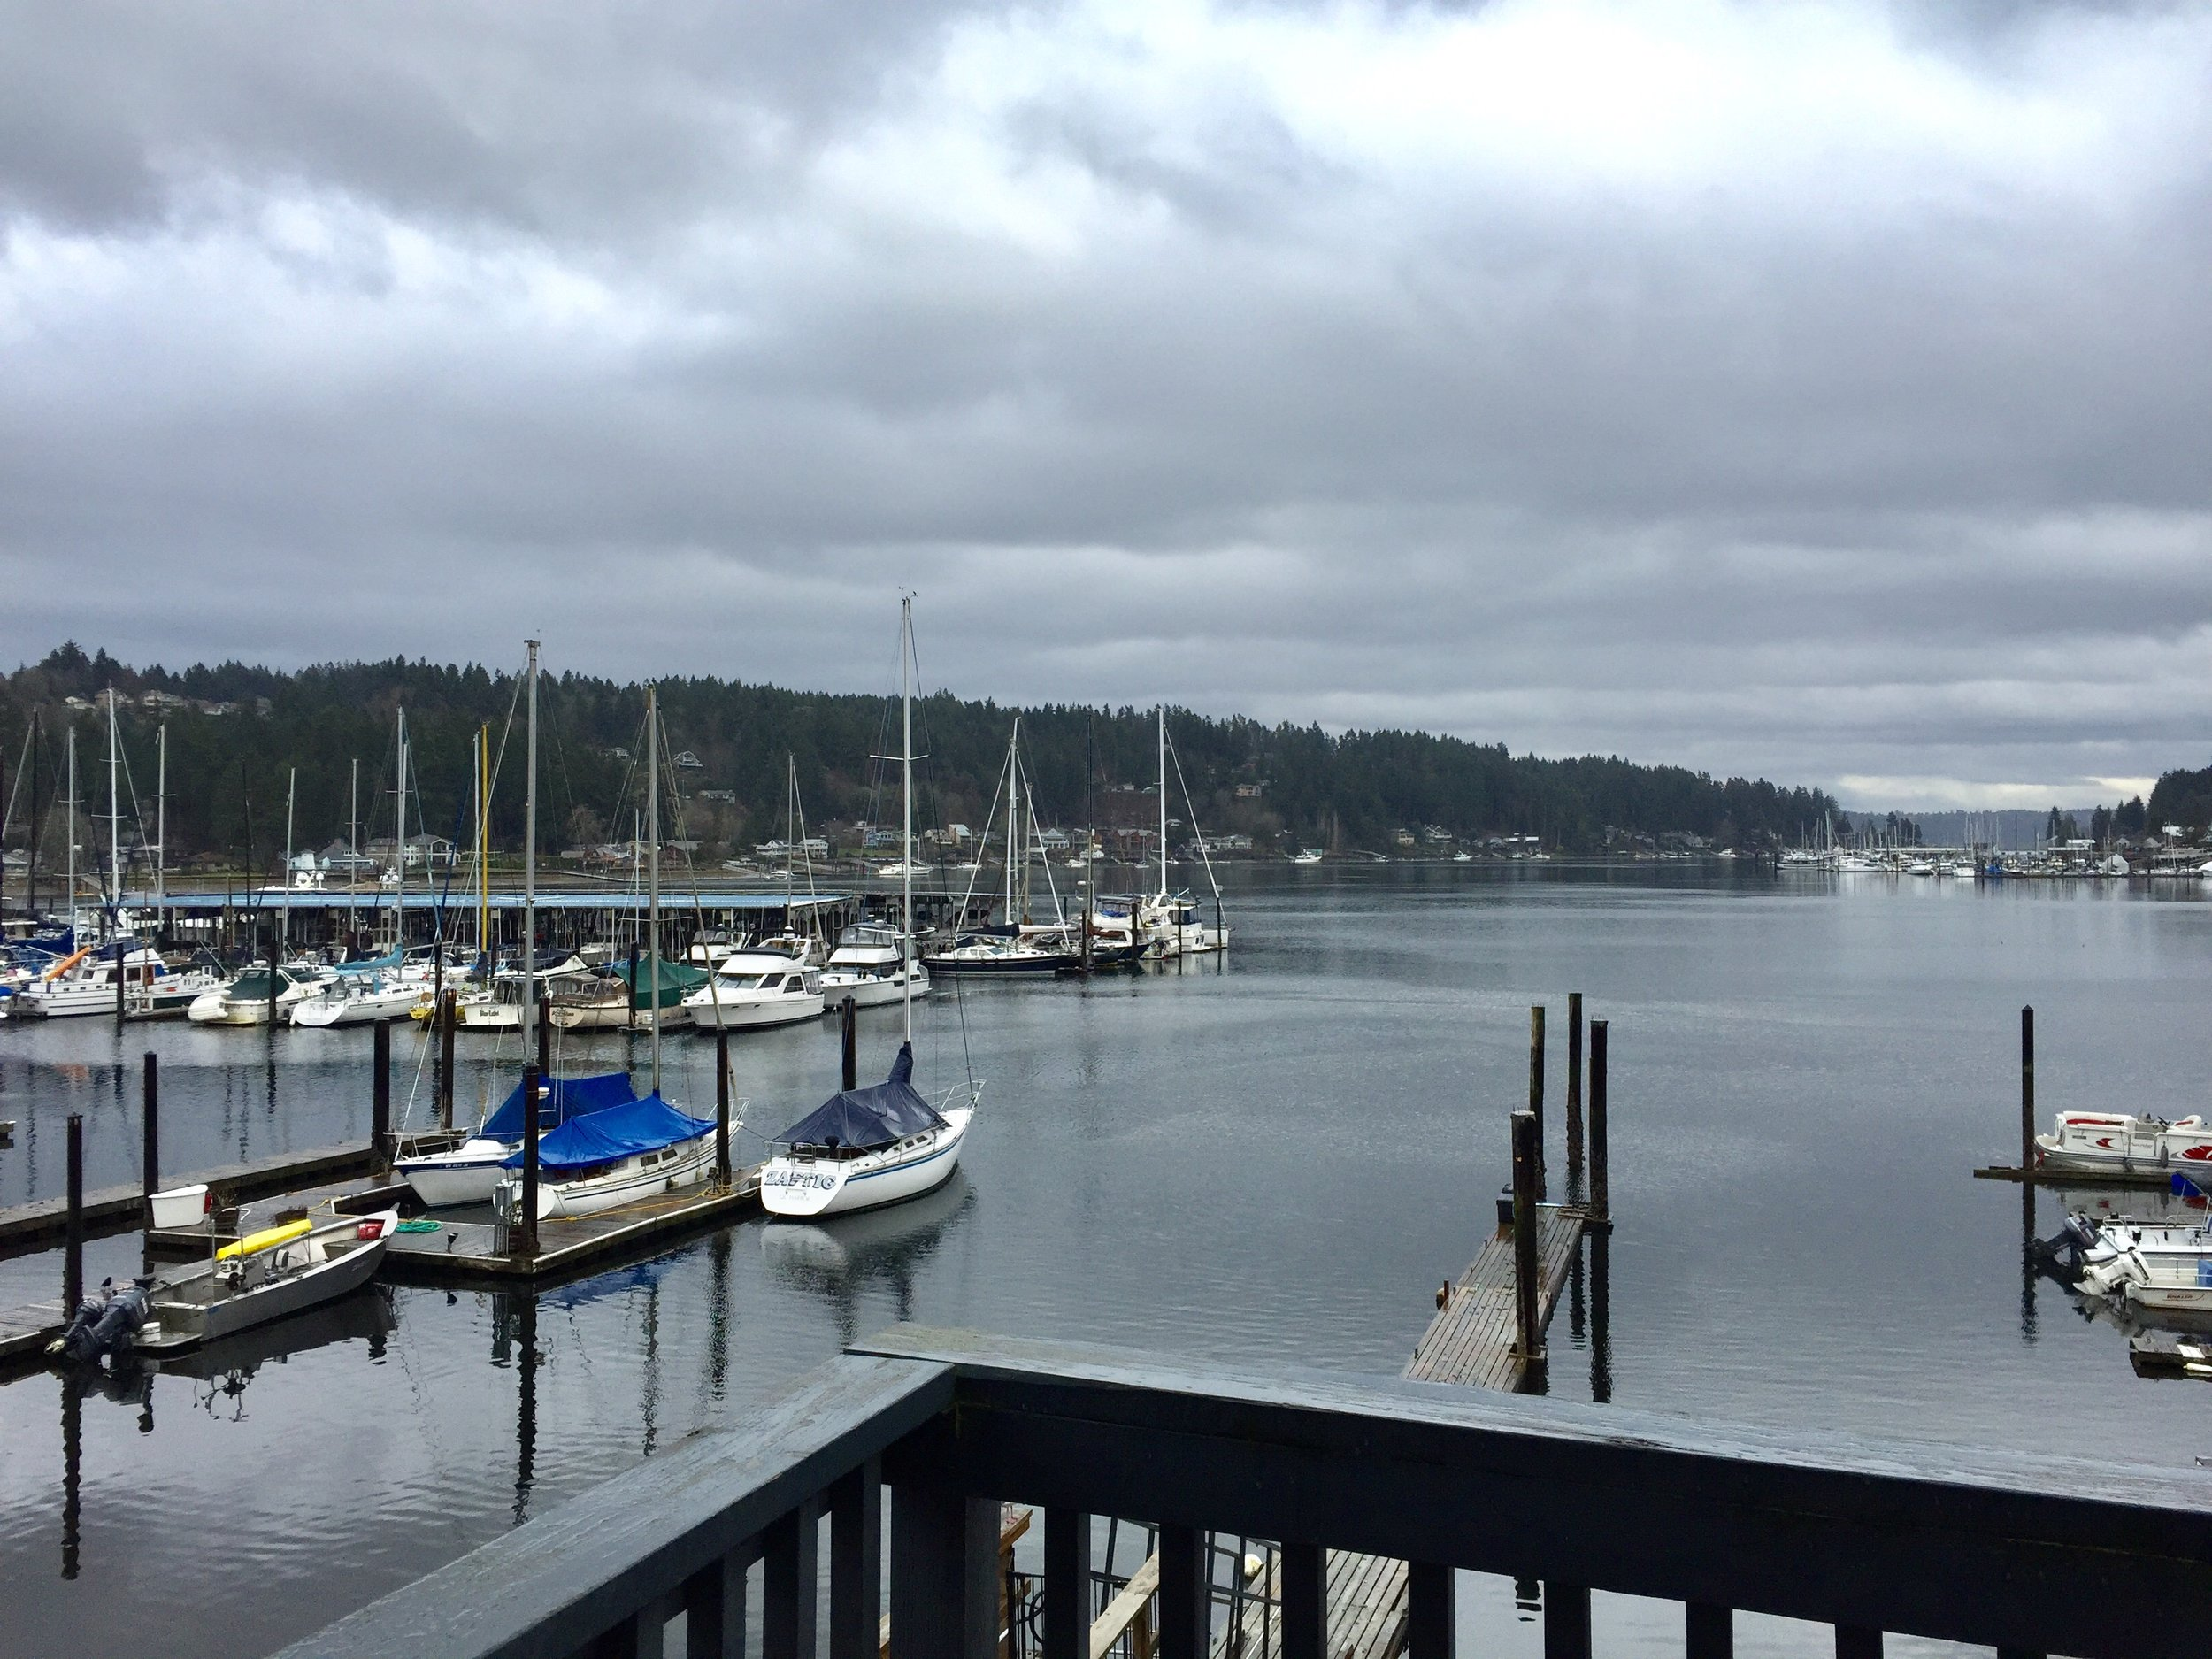 The view of the marina from our table. In the warmer weather you can sit right on the water.